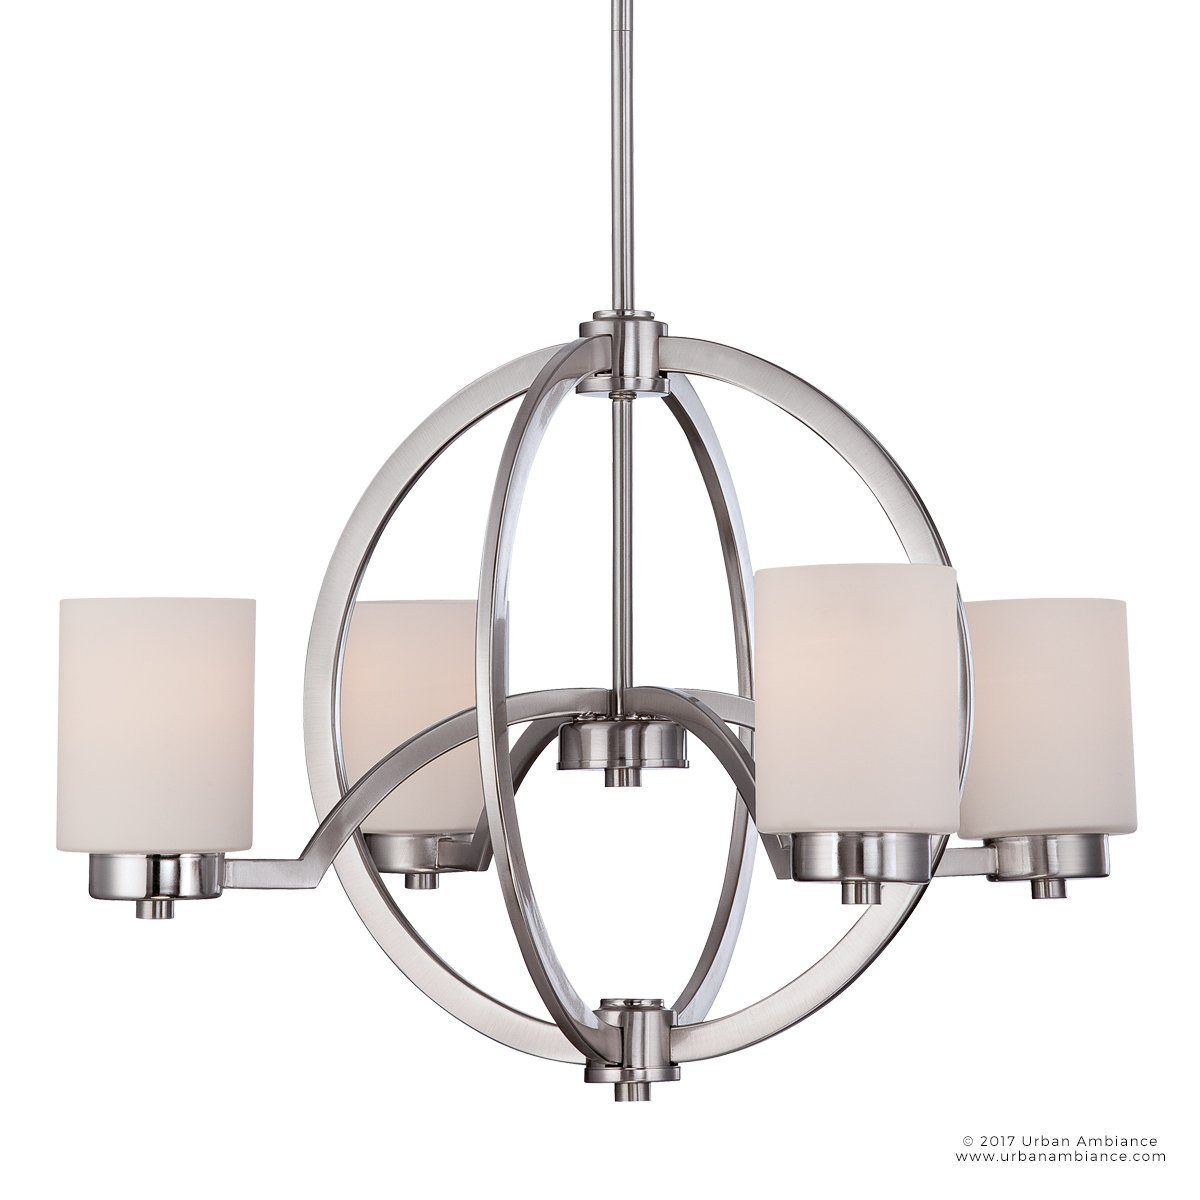 Luxury Contemporary Chandelier, Medium Size: 16''H x 25''W, with Traditional Style Elements, Globe Design, Pretty Brushed Nickel Finish and Opal Etched Glass, UQL2170 by Urban Ambiance